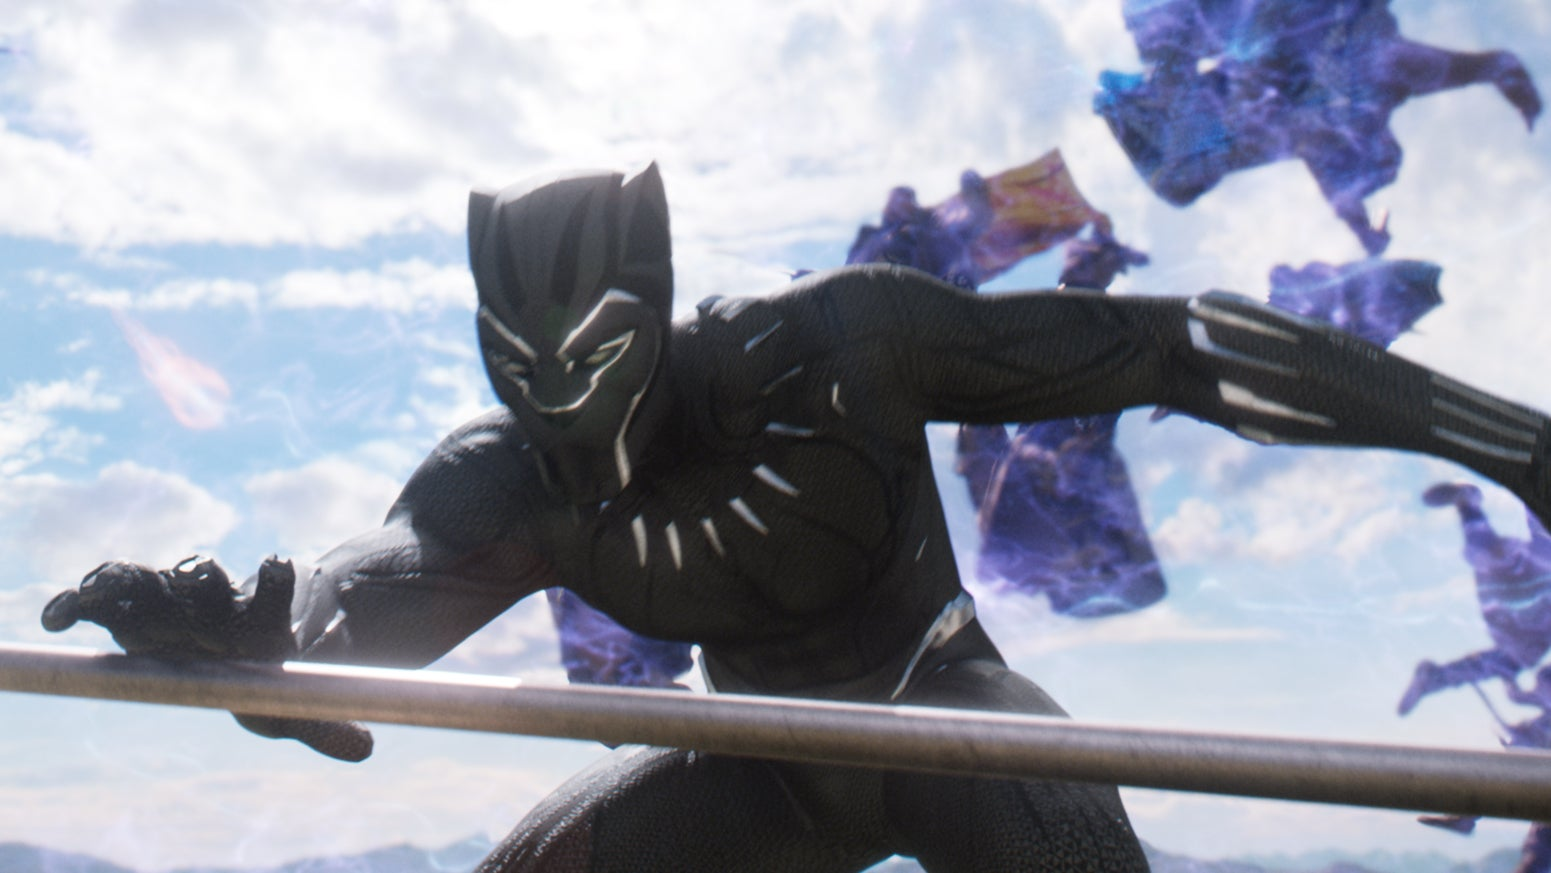 The People Of Wauconda, Illinois, Would Like You To Stop Asking If They Have Black Panther's Vibranium